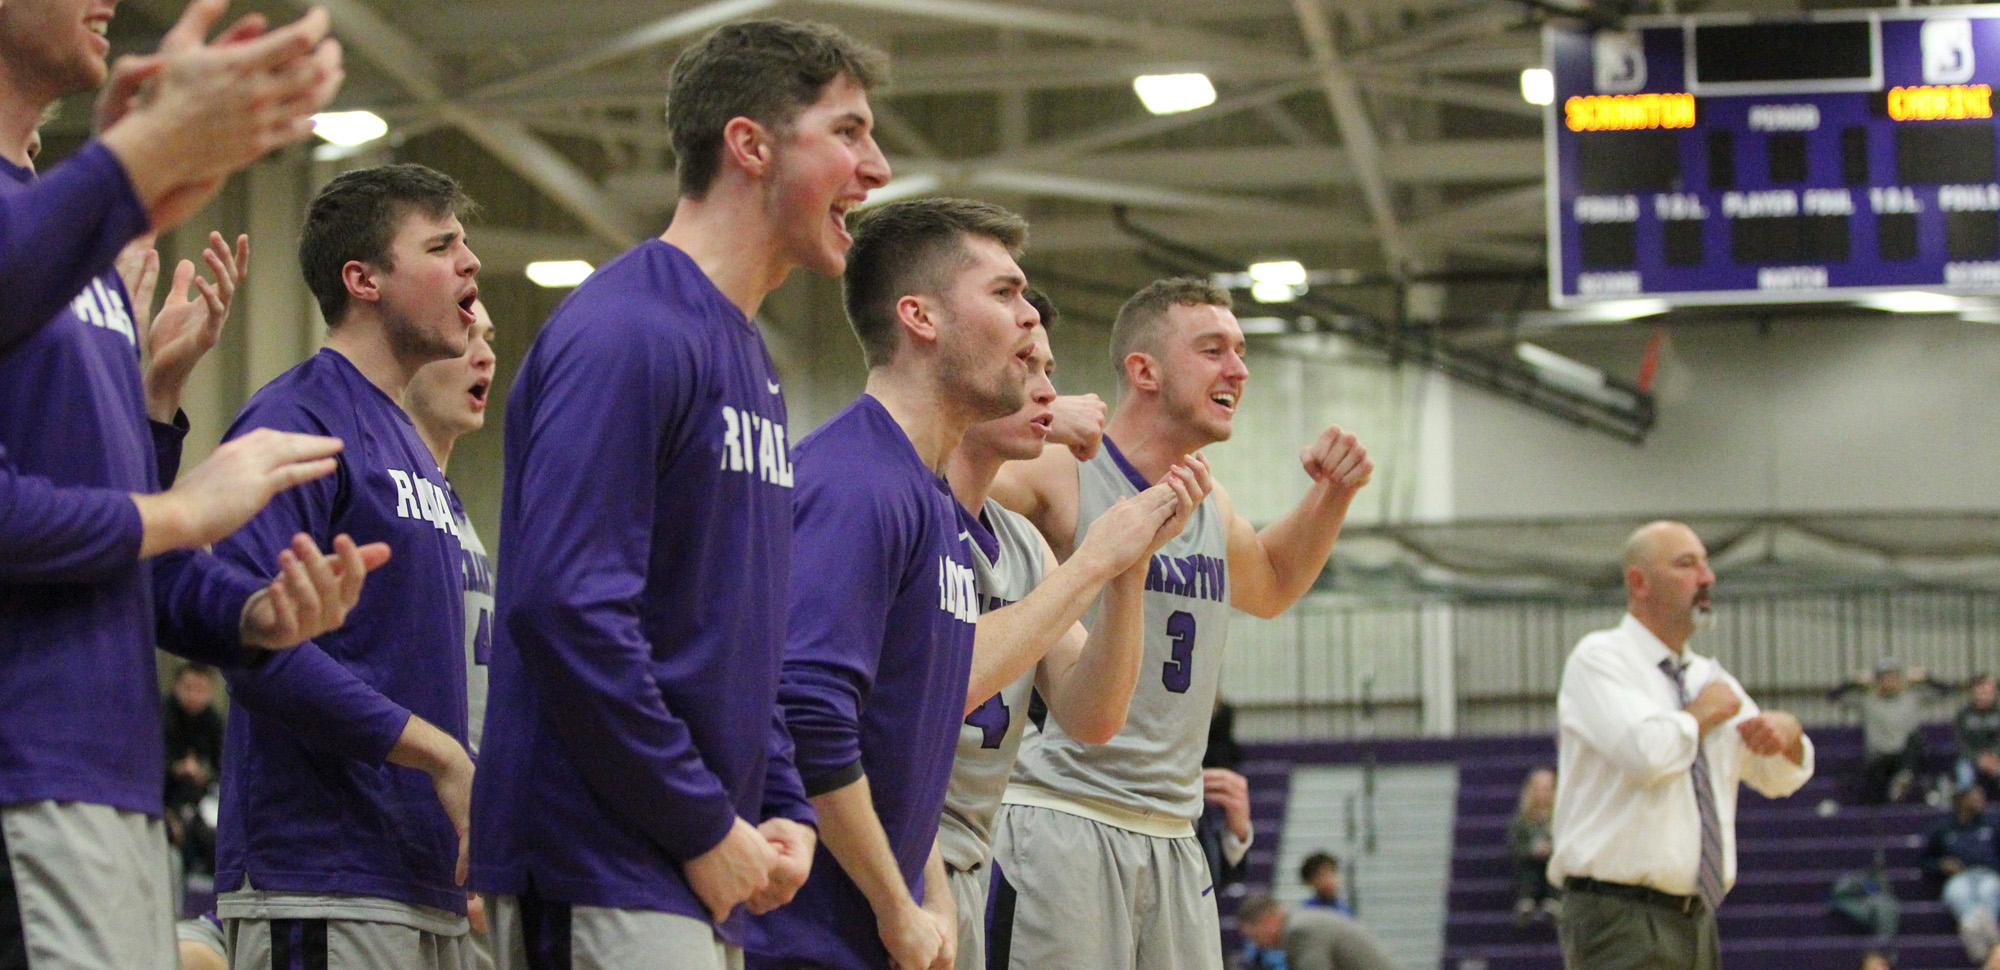 The men's basketball team is ranked eighth in the first NCAA Division III regional rankings.